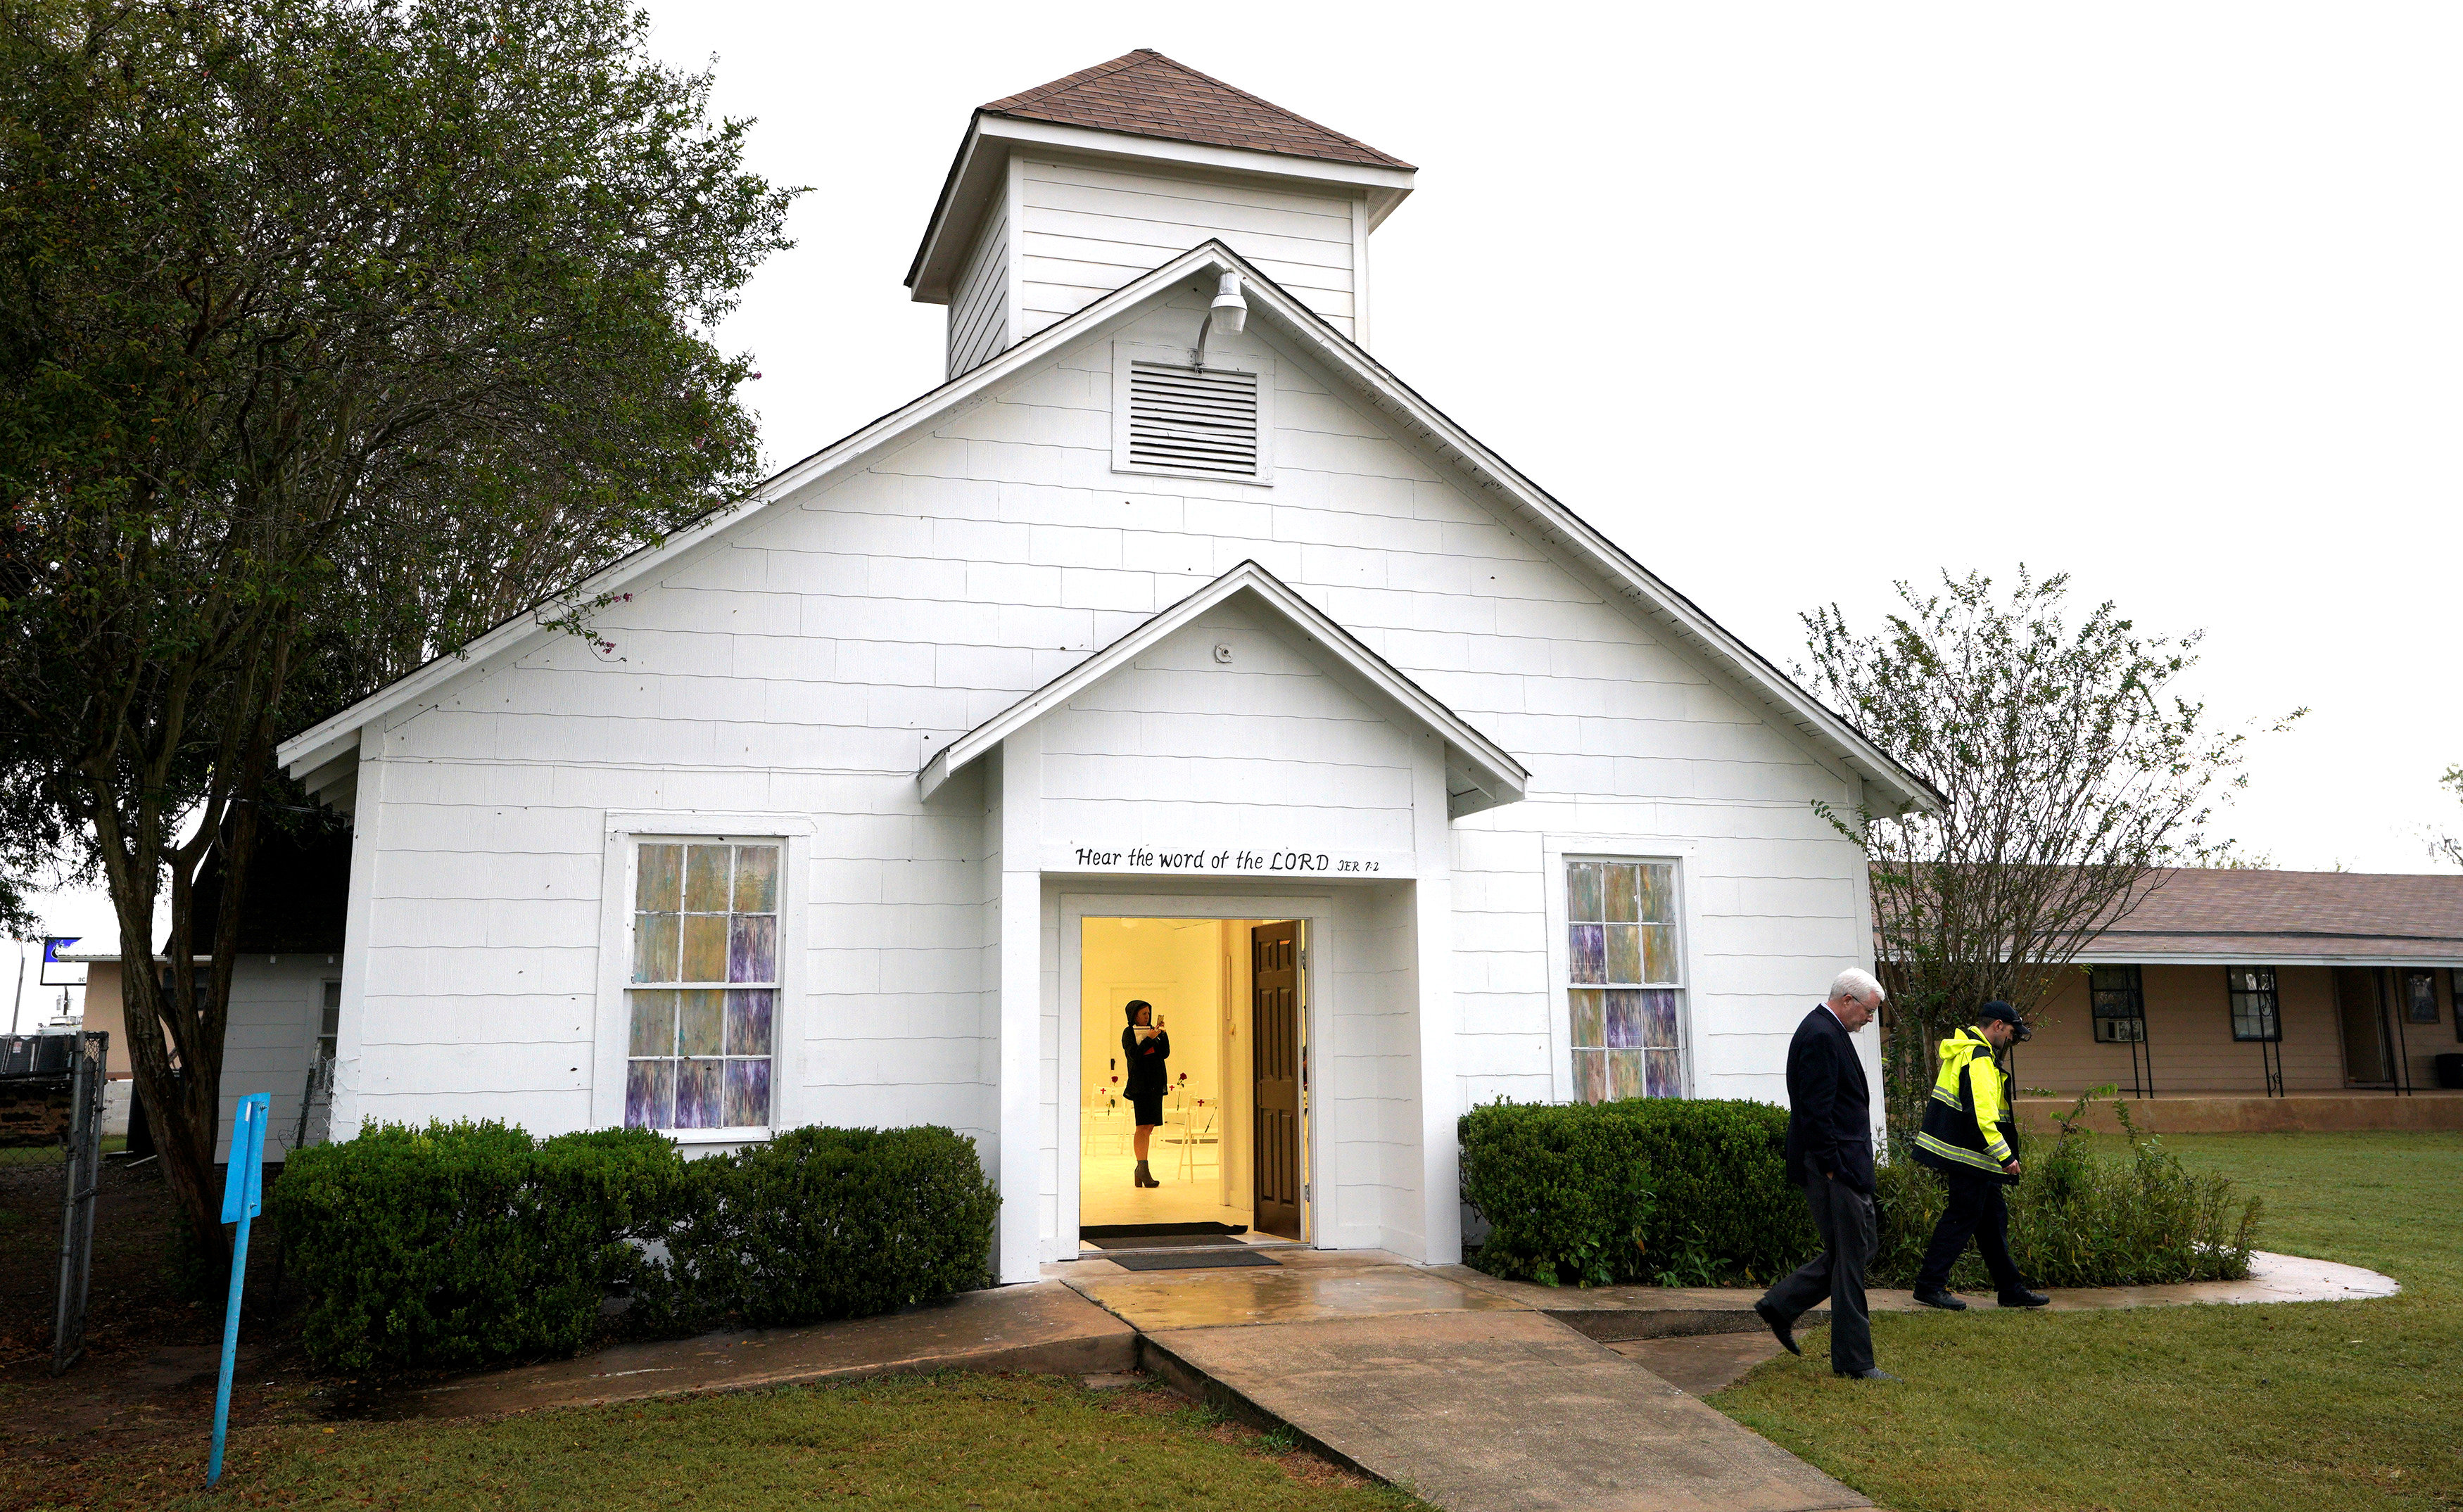 A member of the media walks inside the First Baptist Church of Sutherland Springs where 26 people were killed one week ago, as the church opens to the public as a memorial to those killed, in Sutherland Springs, Texas, U.S. November 12, 2017.